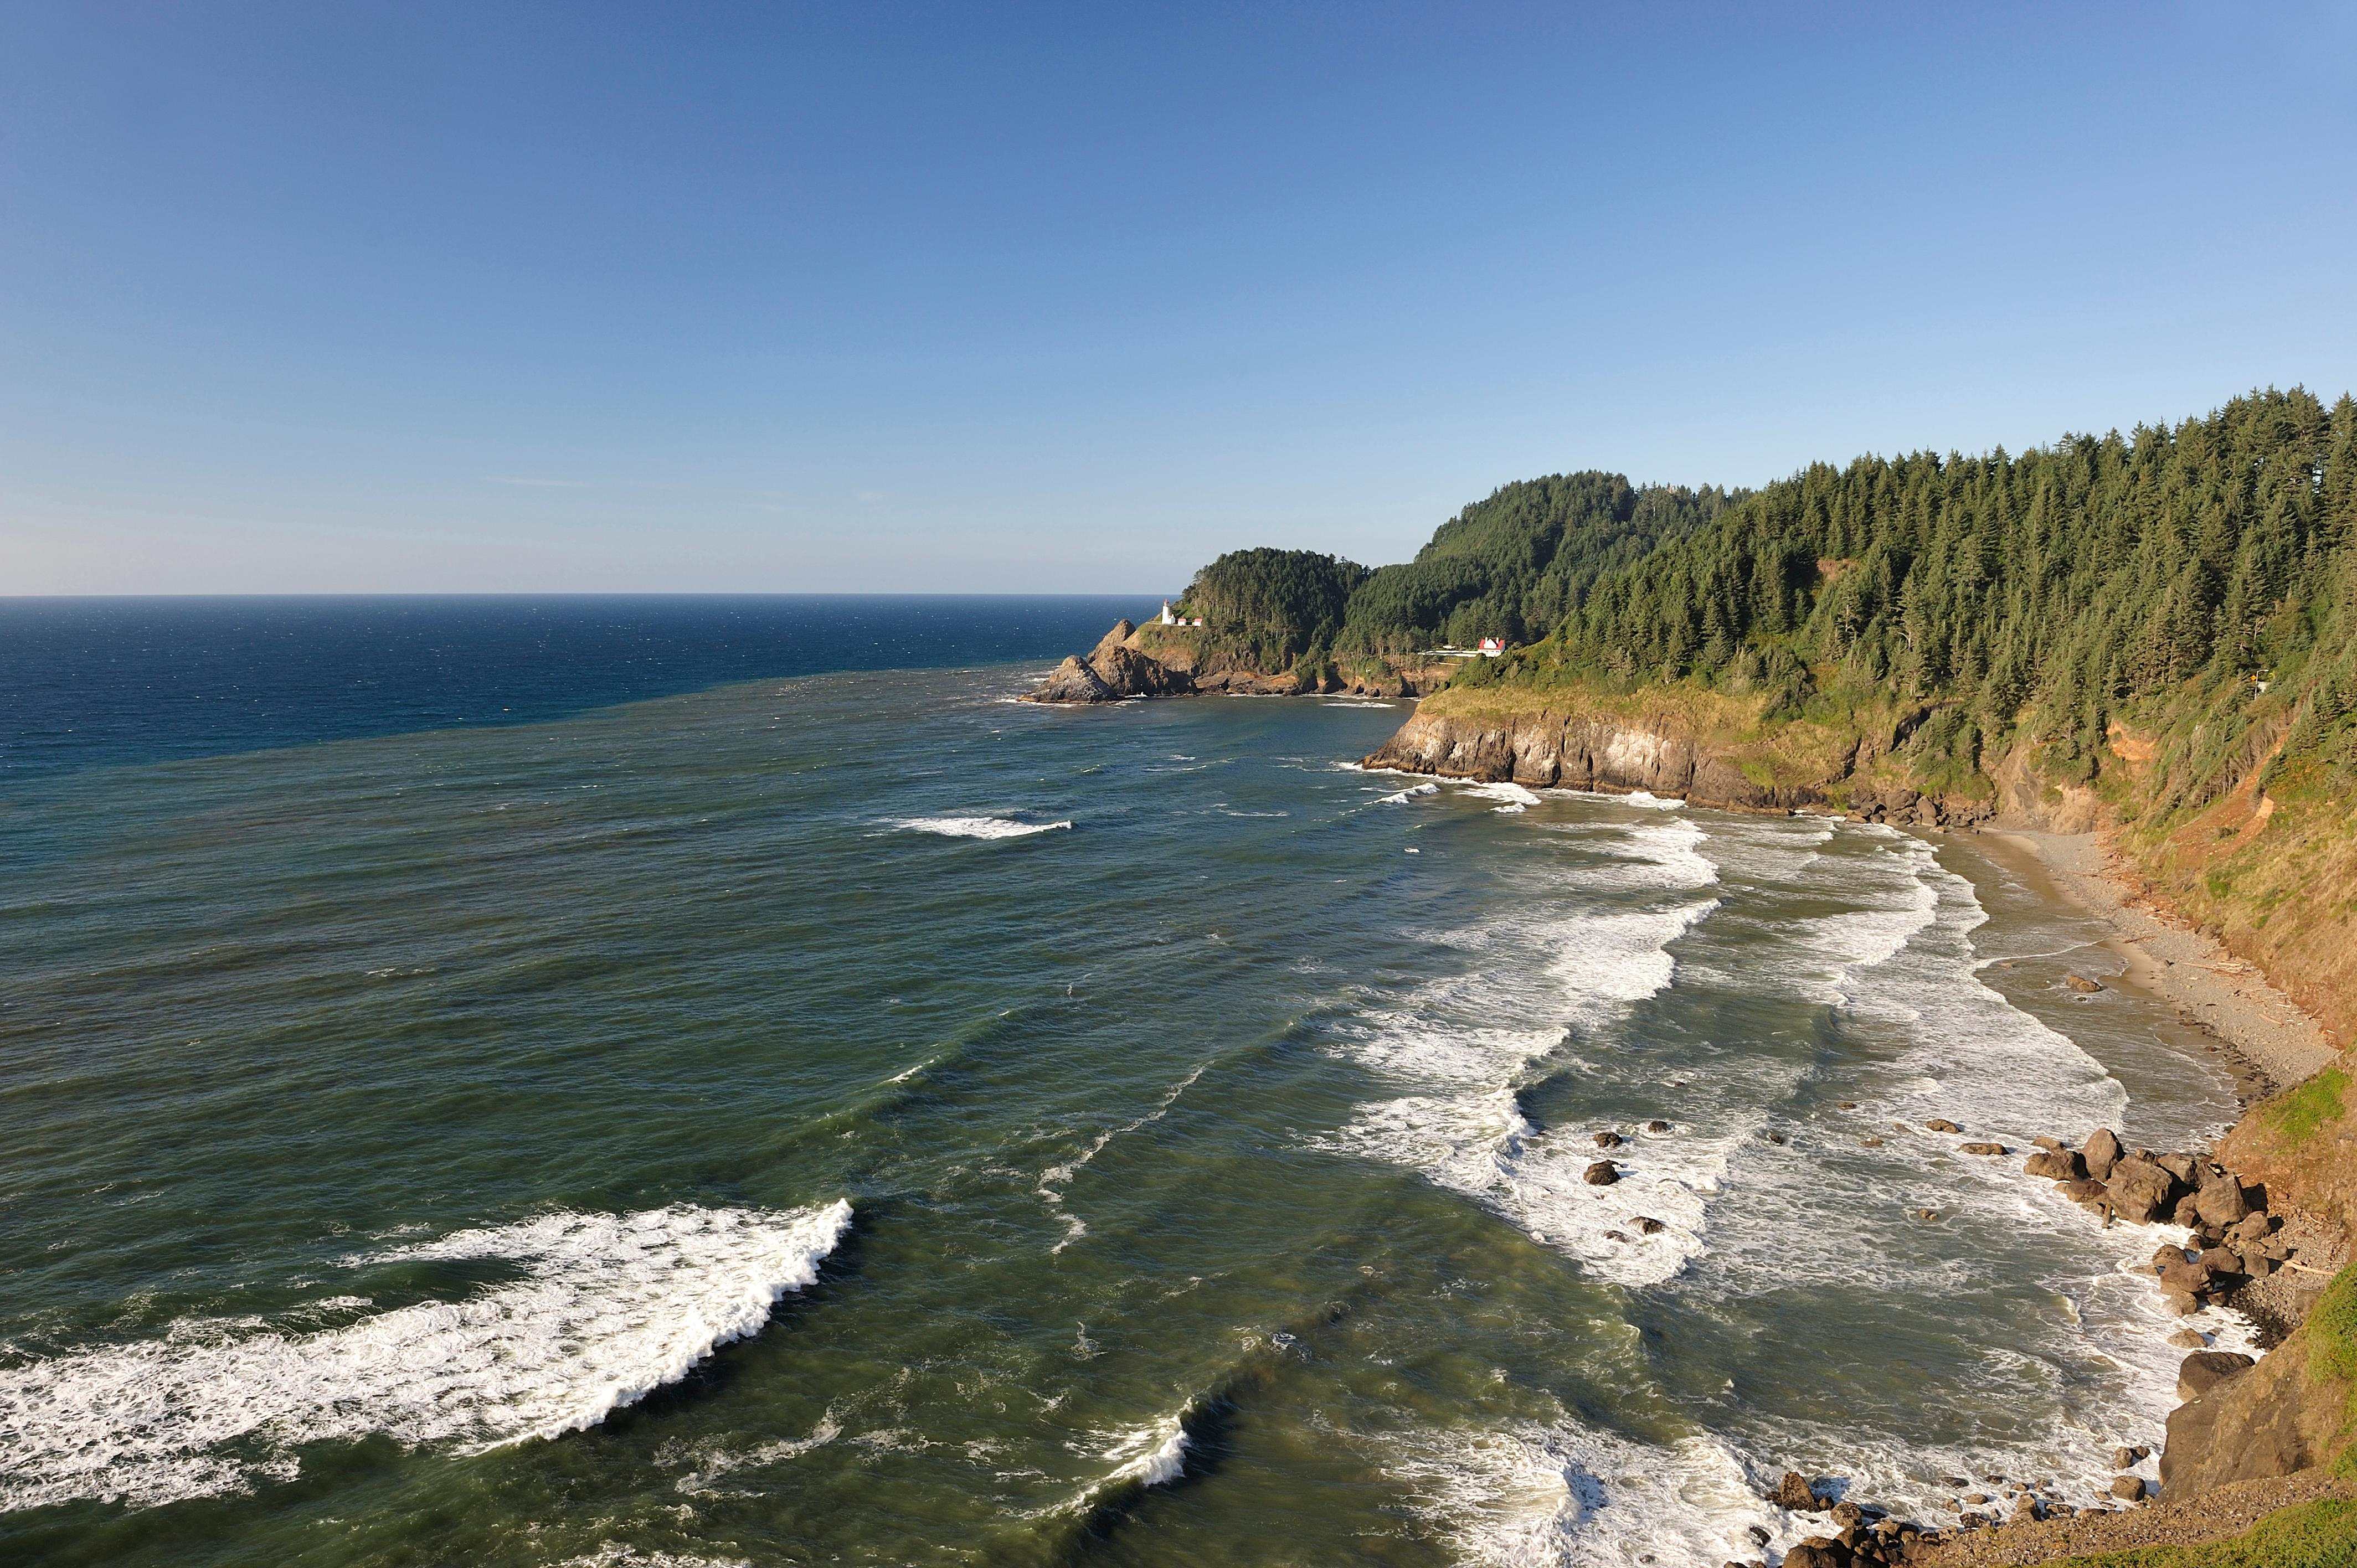 View from Sea Lions Cave. Heceta Head Lighthouse. (Photo: Christian Heeb, courtesy of Travel Oregon)